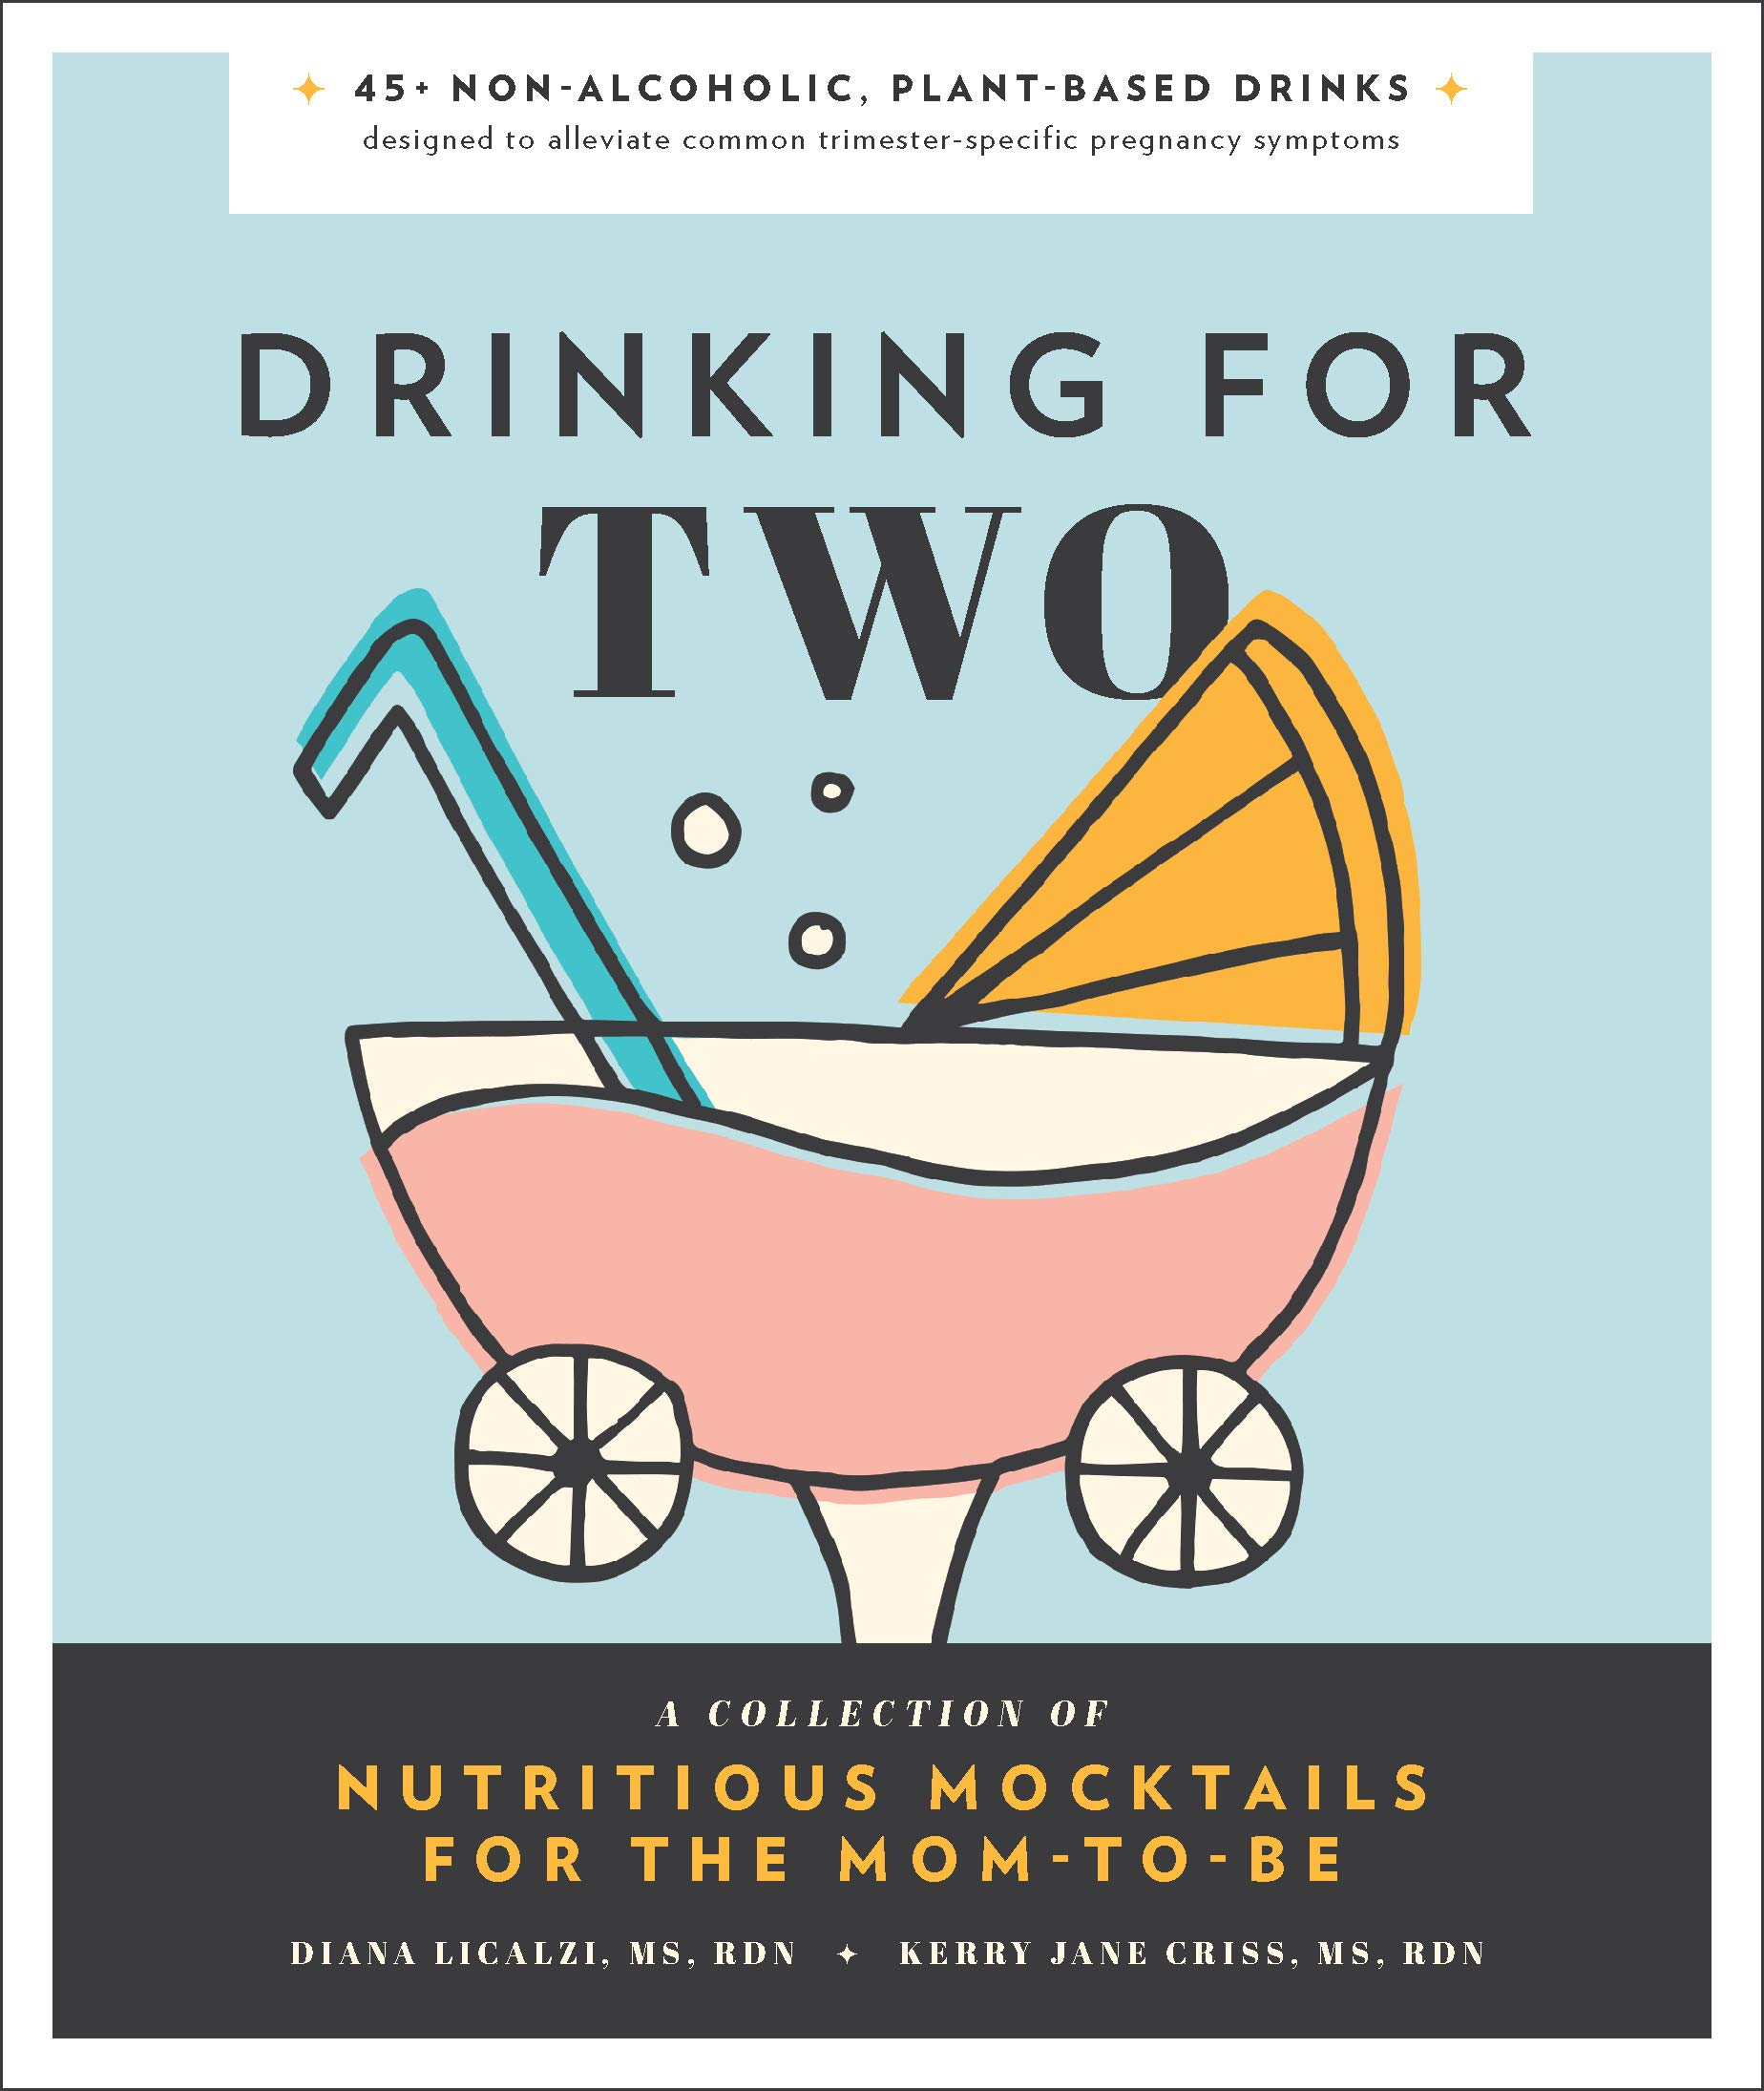 Drinking for Two: Nutritious Mocktails for the Mom-To-Be by Blue Star Press